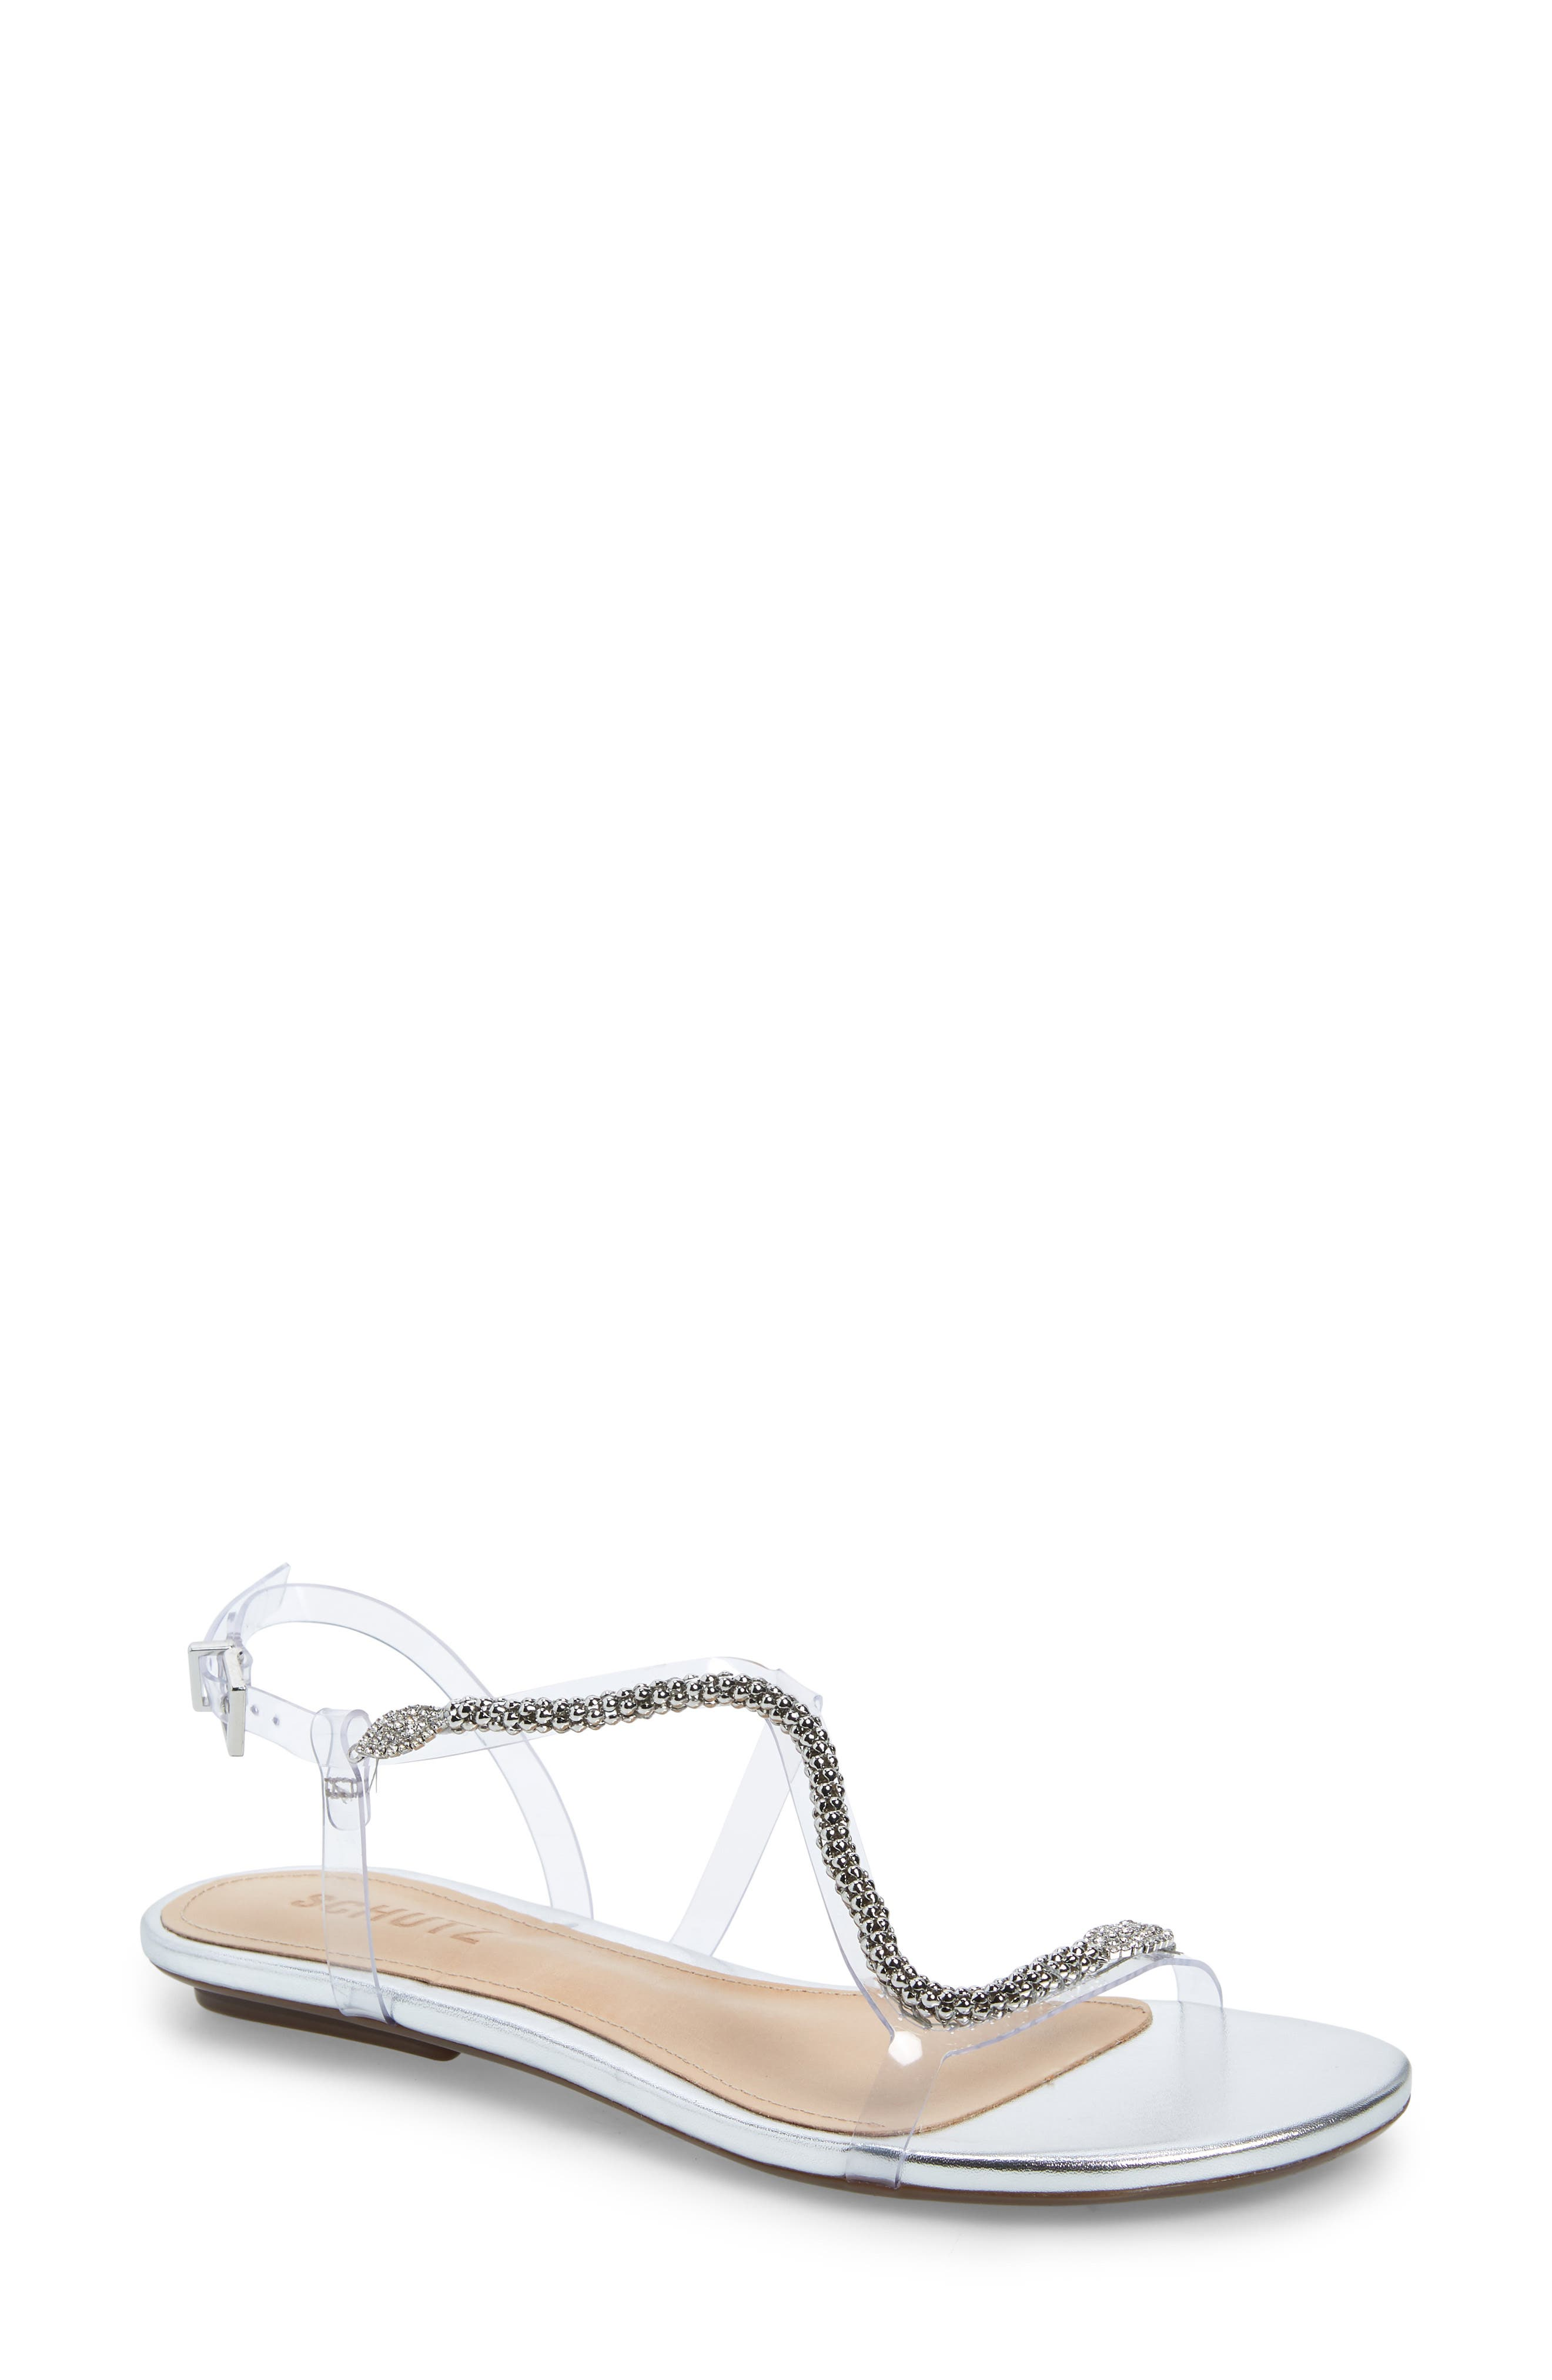 Gabbyl Embellished Sandal,                         Main,                         color, PRATA